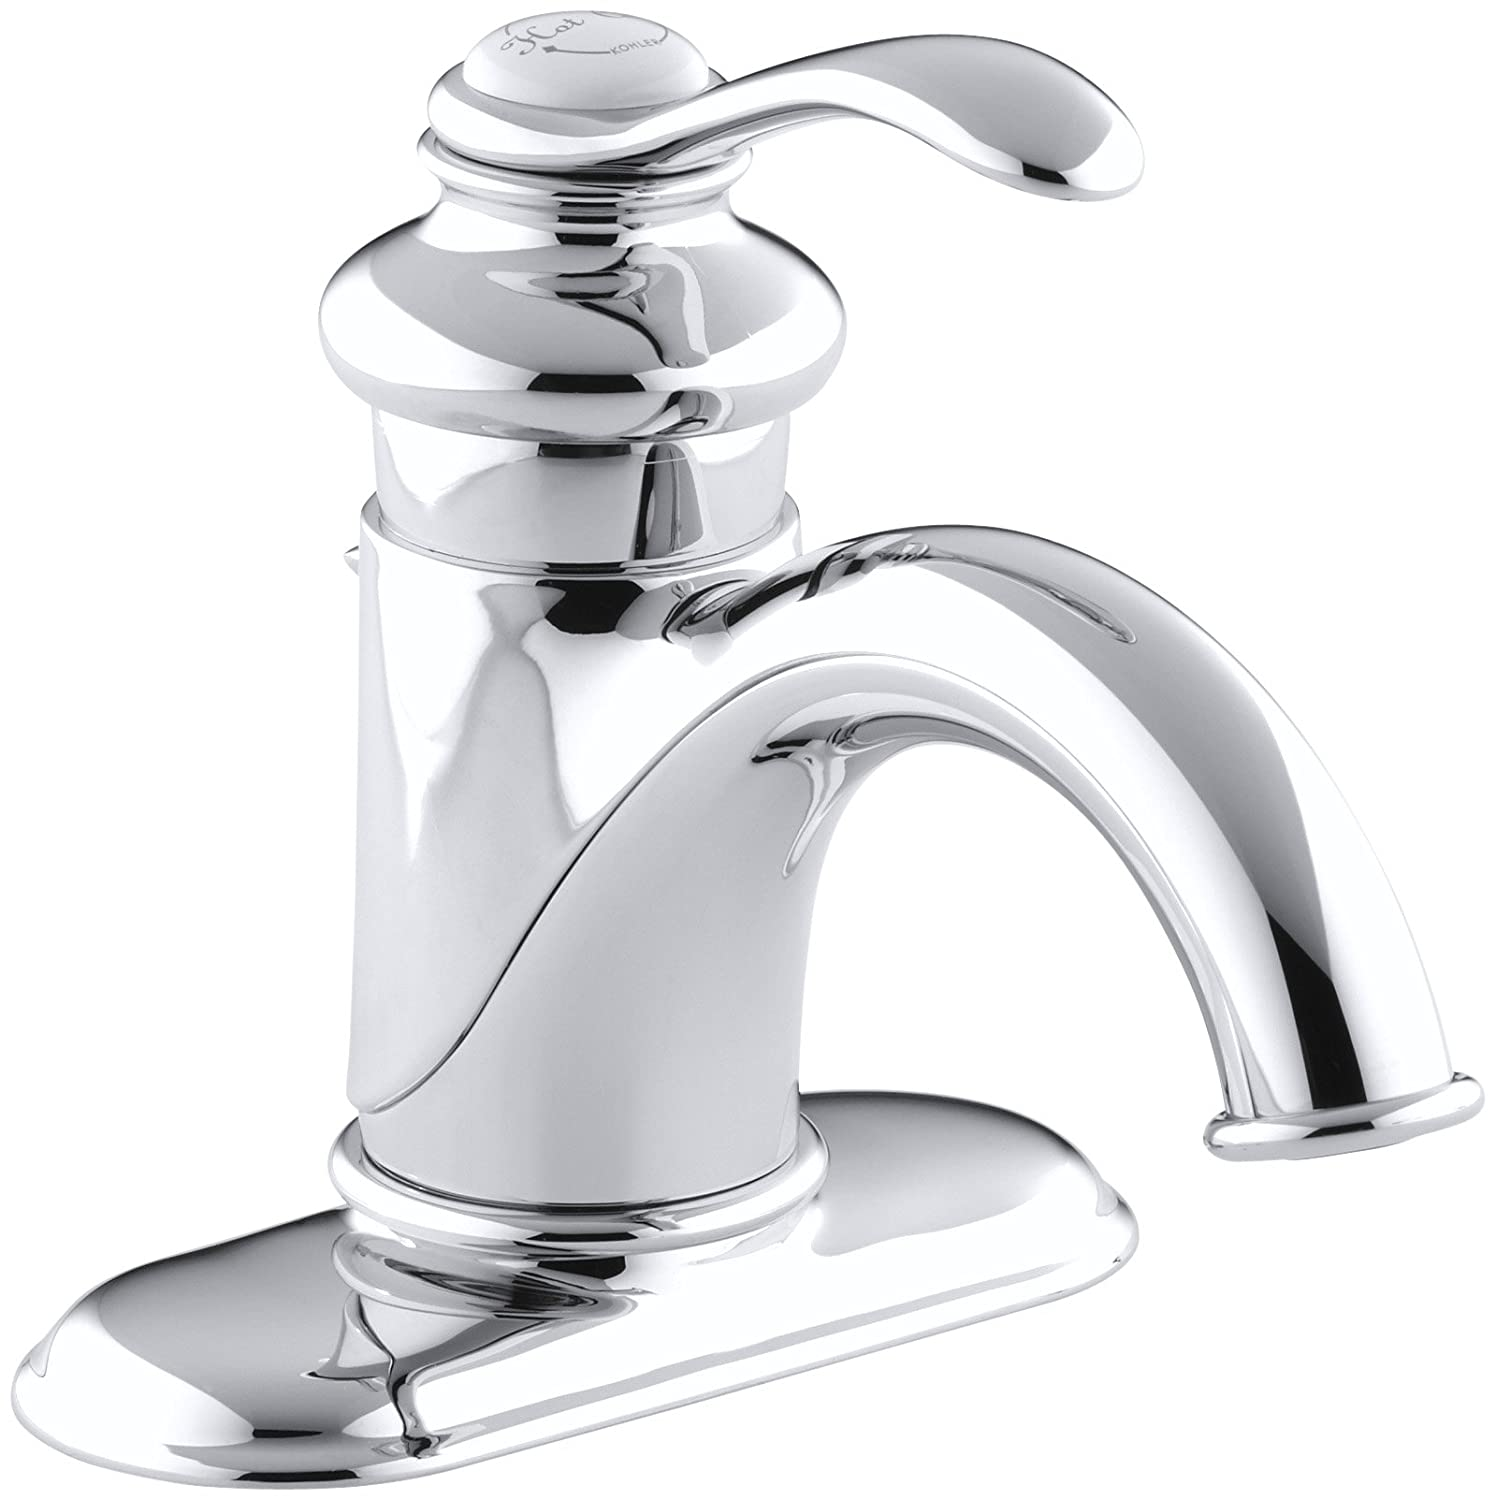 KOHLER K-12181-CP Fairfax 4 In. Centerset Bathroom Sink Faucet with ...